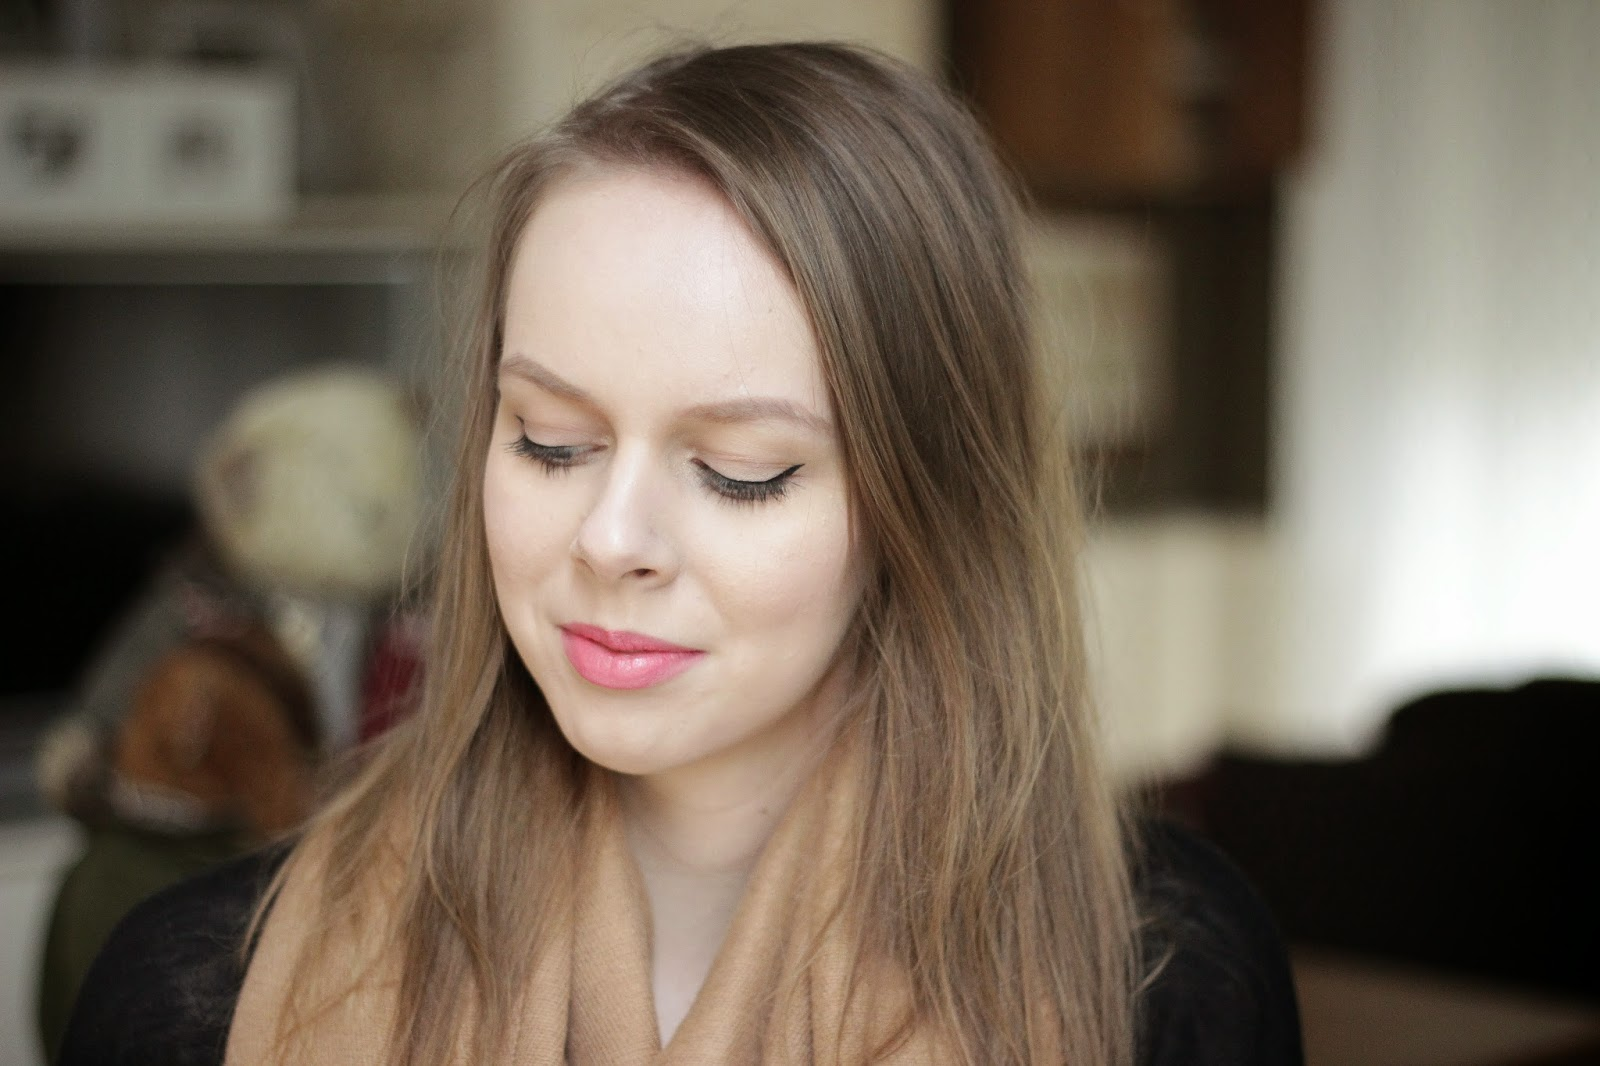 ook of the day, blowy make-up